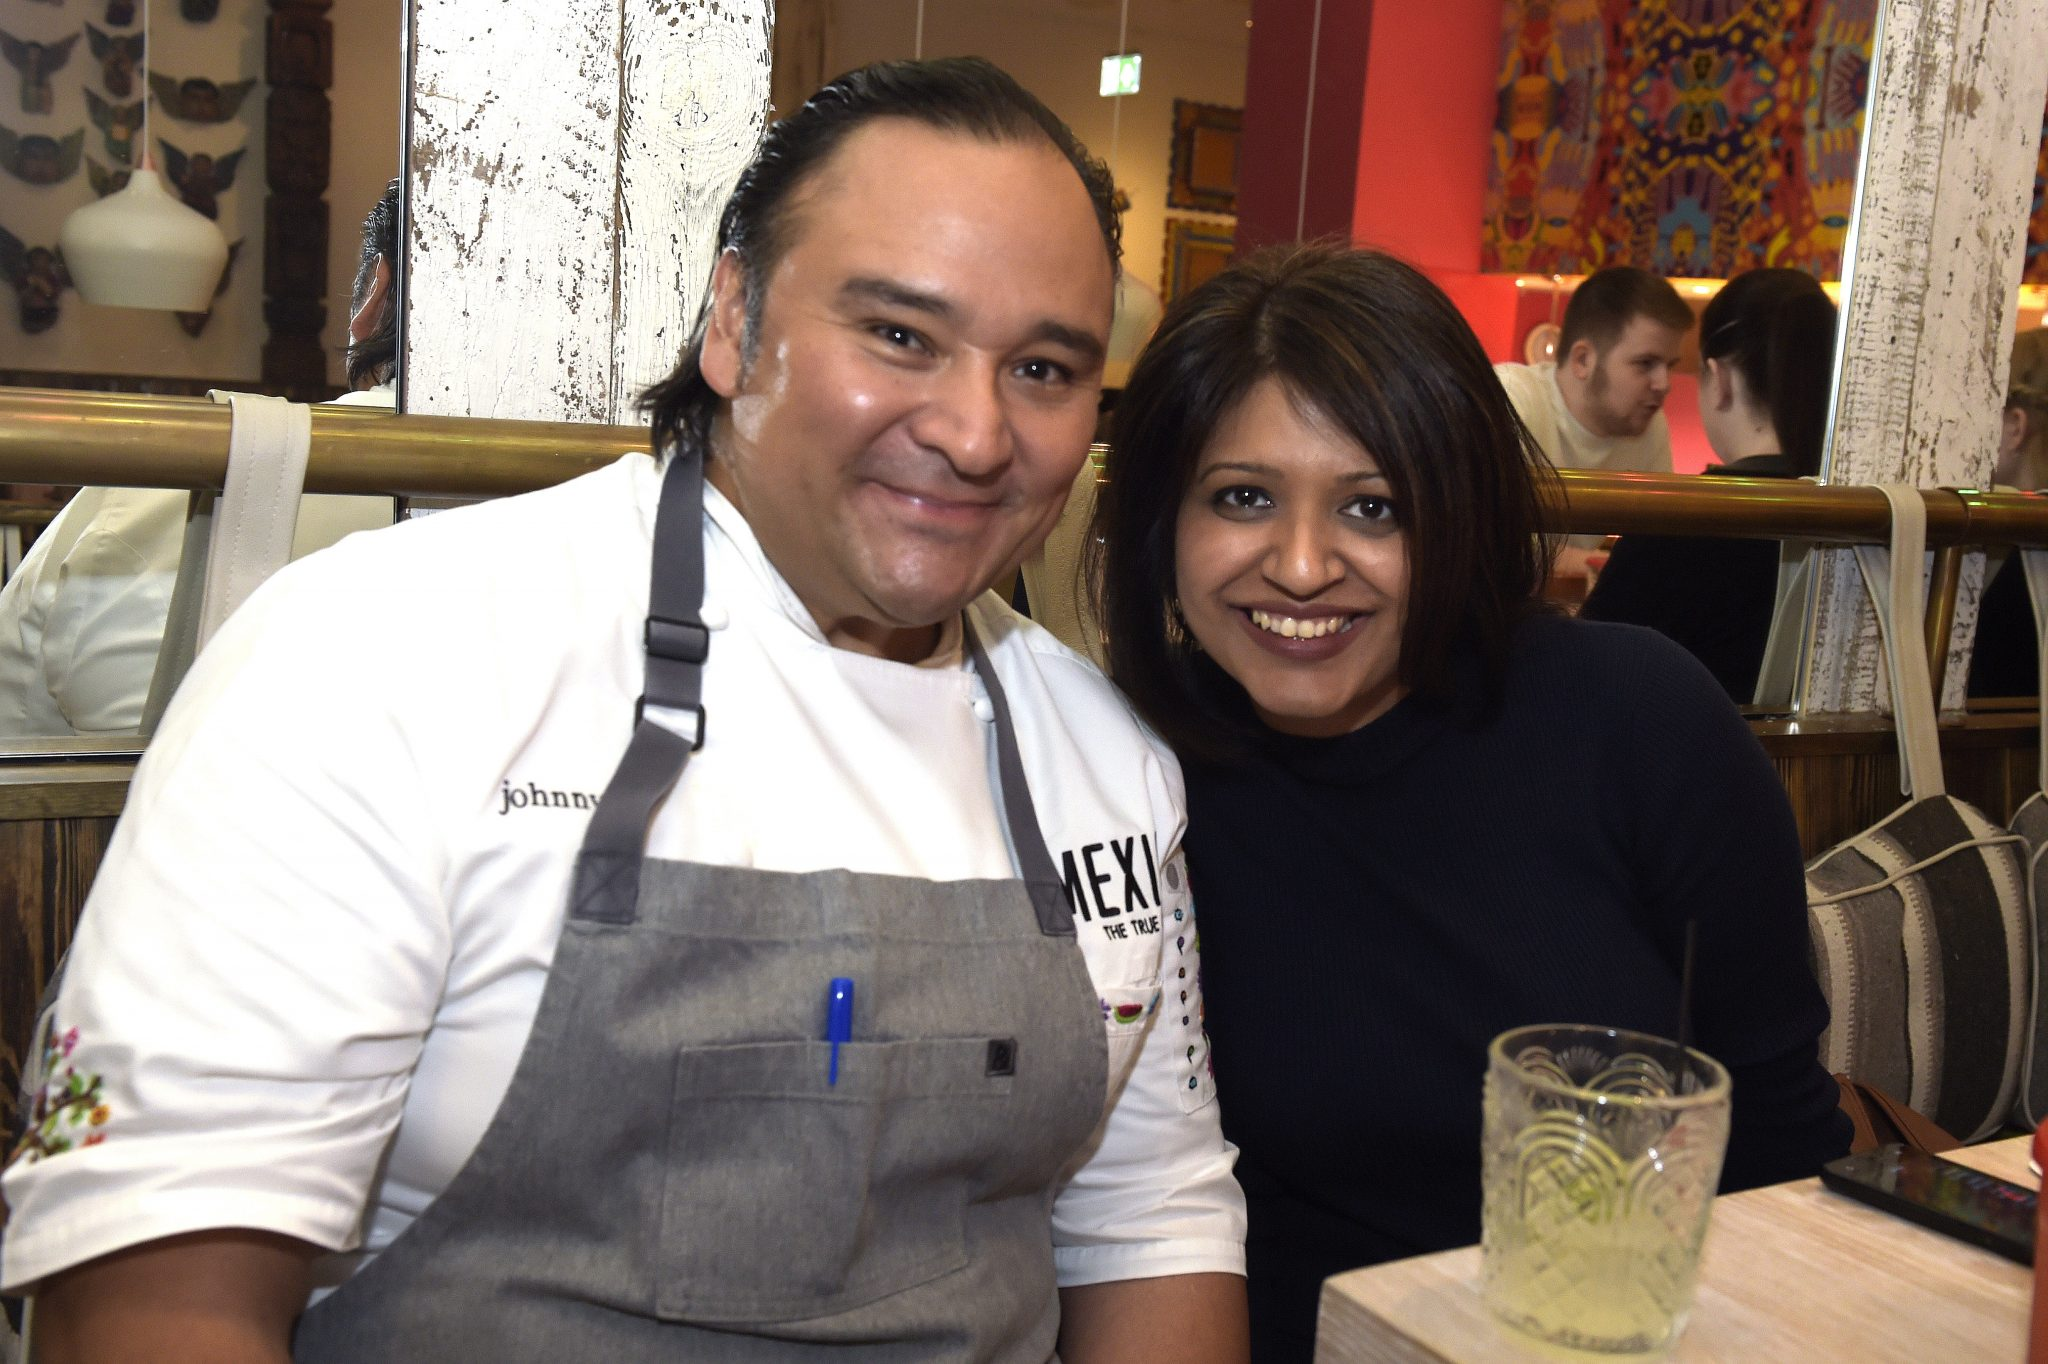 MEXIco storms into Derby as destination restaurant in East Midlands